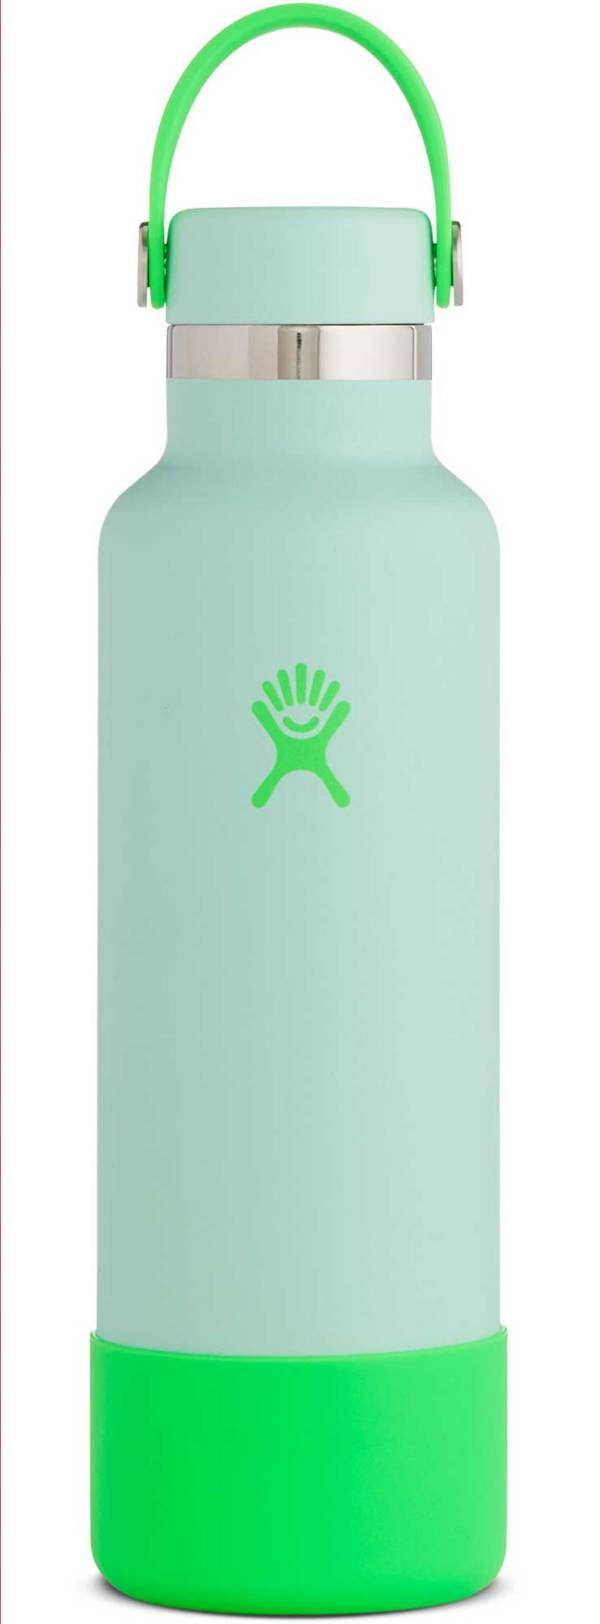 Hydro Flask Prism Pop 21 oz. Standard Mouth Bottle product image